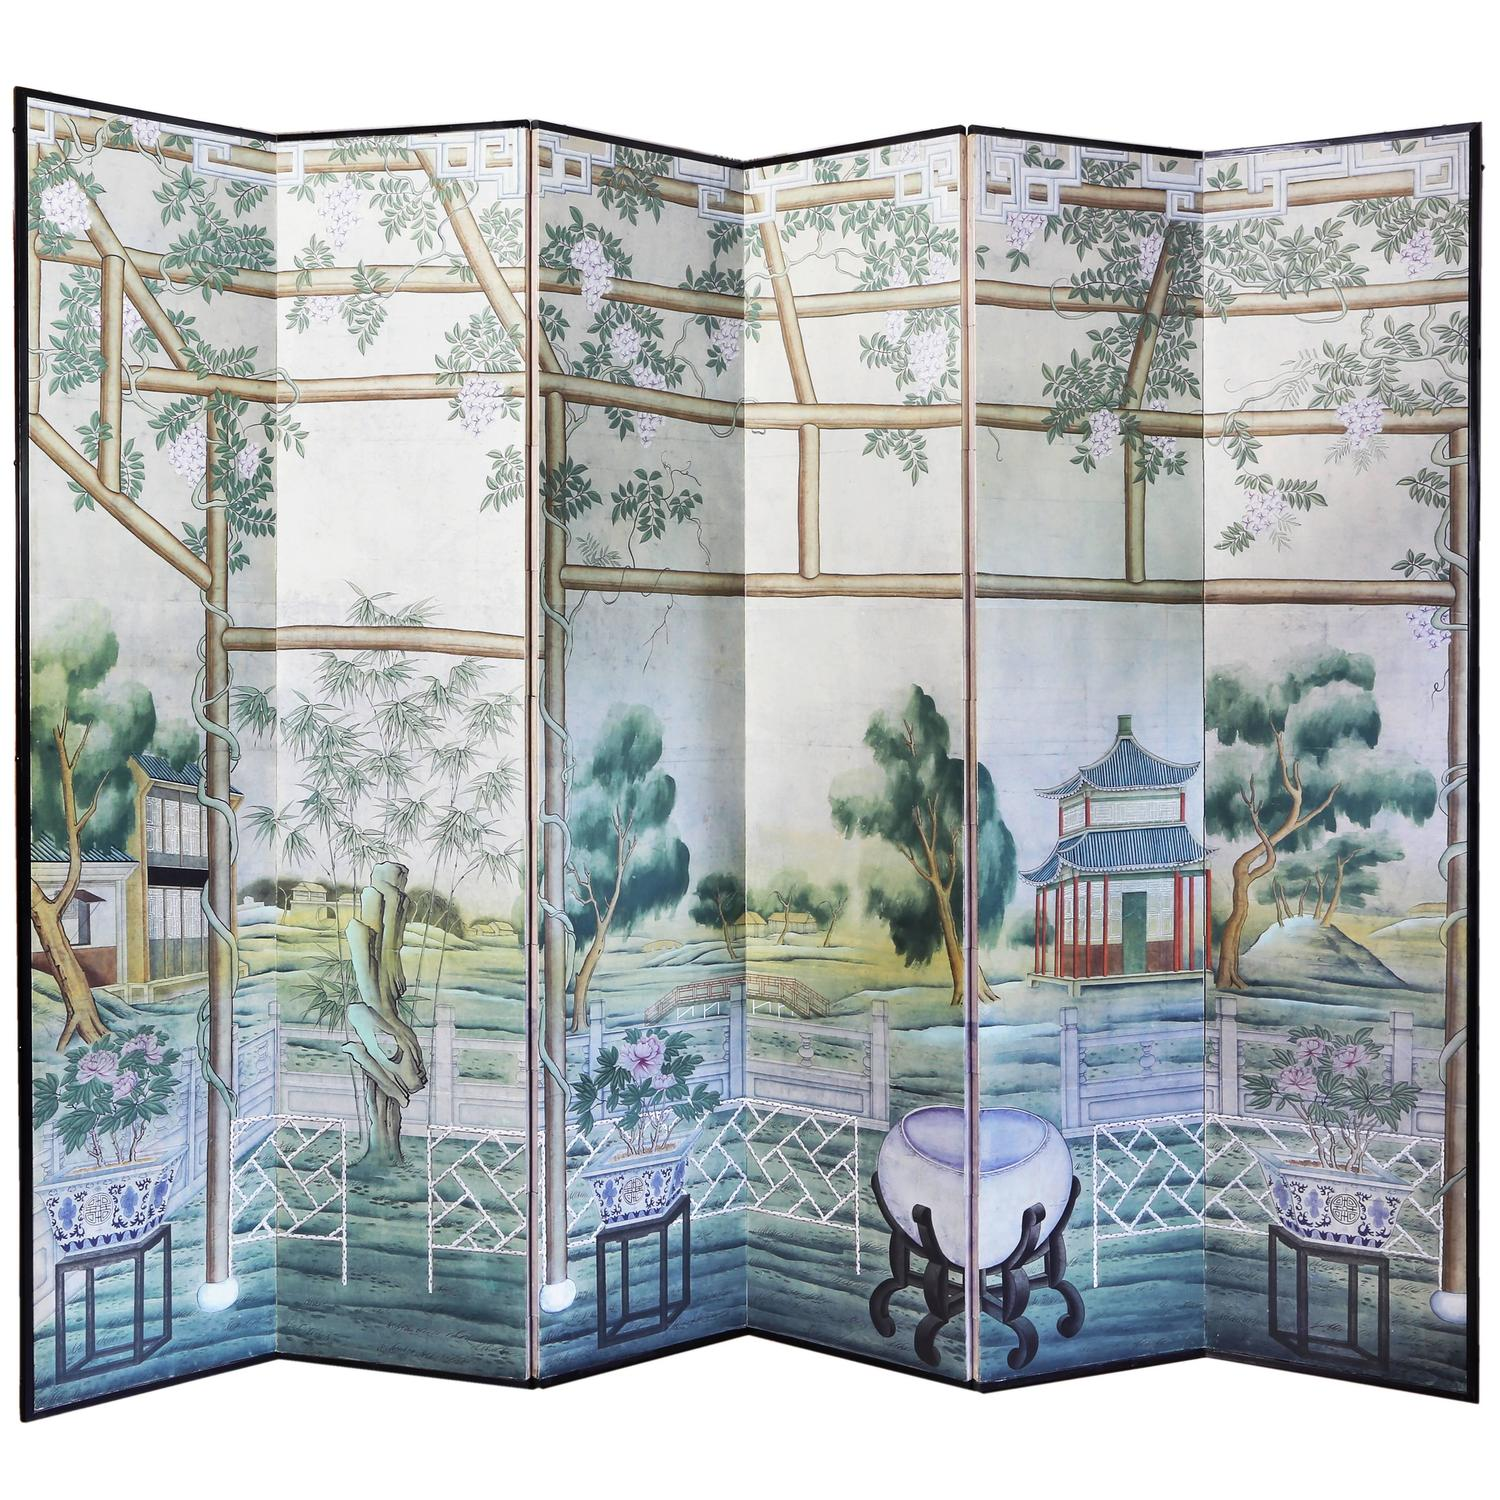 19th century french hand painted room divider screen for for Painted screens room dividers